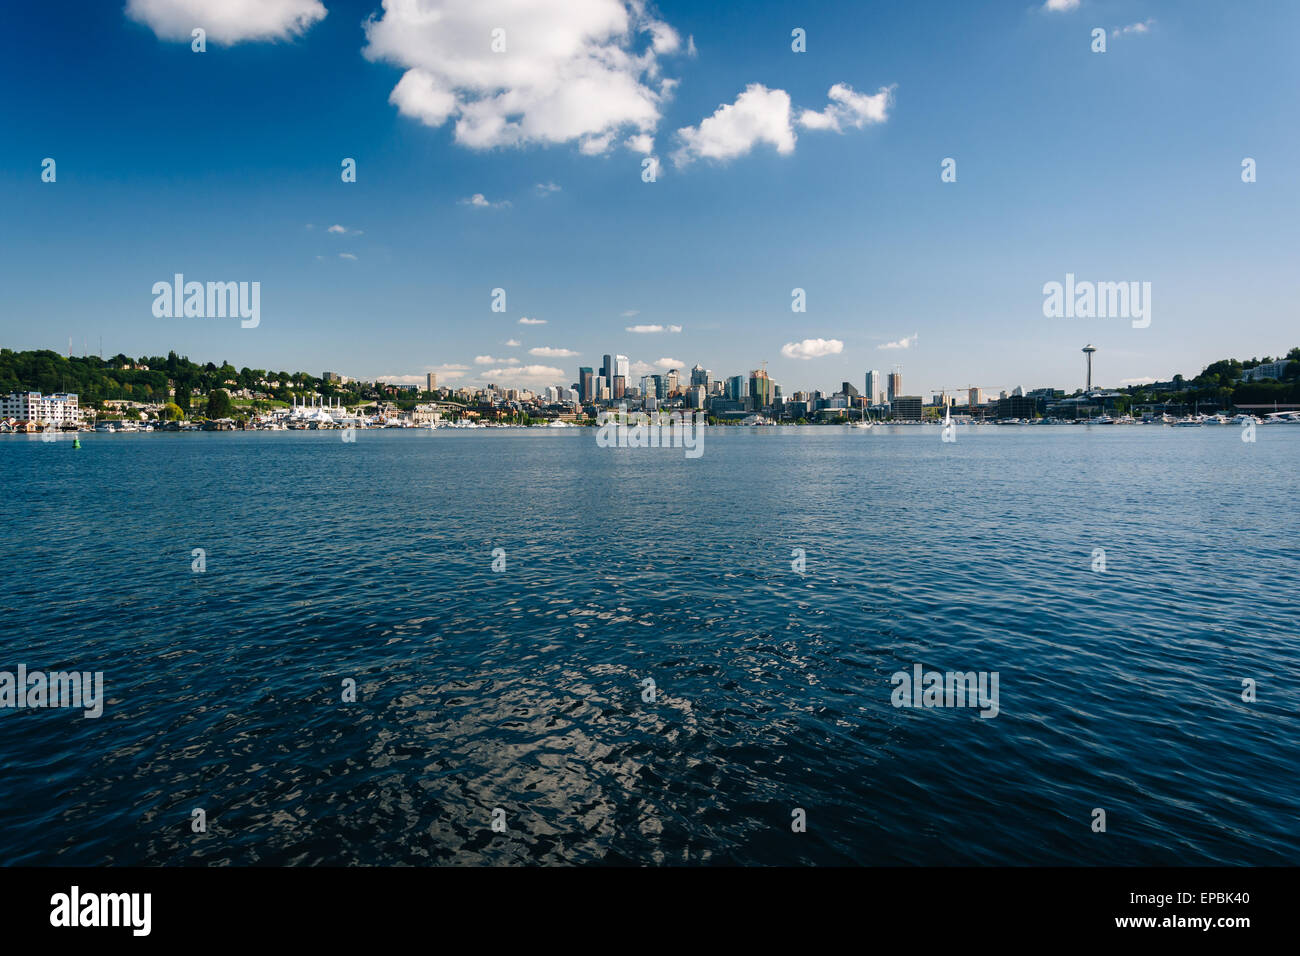 Lake Union and view of the skyline in Seattle, Washington. - Stock Image